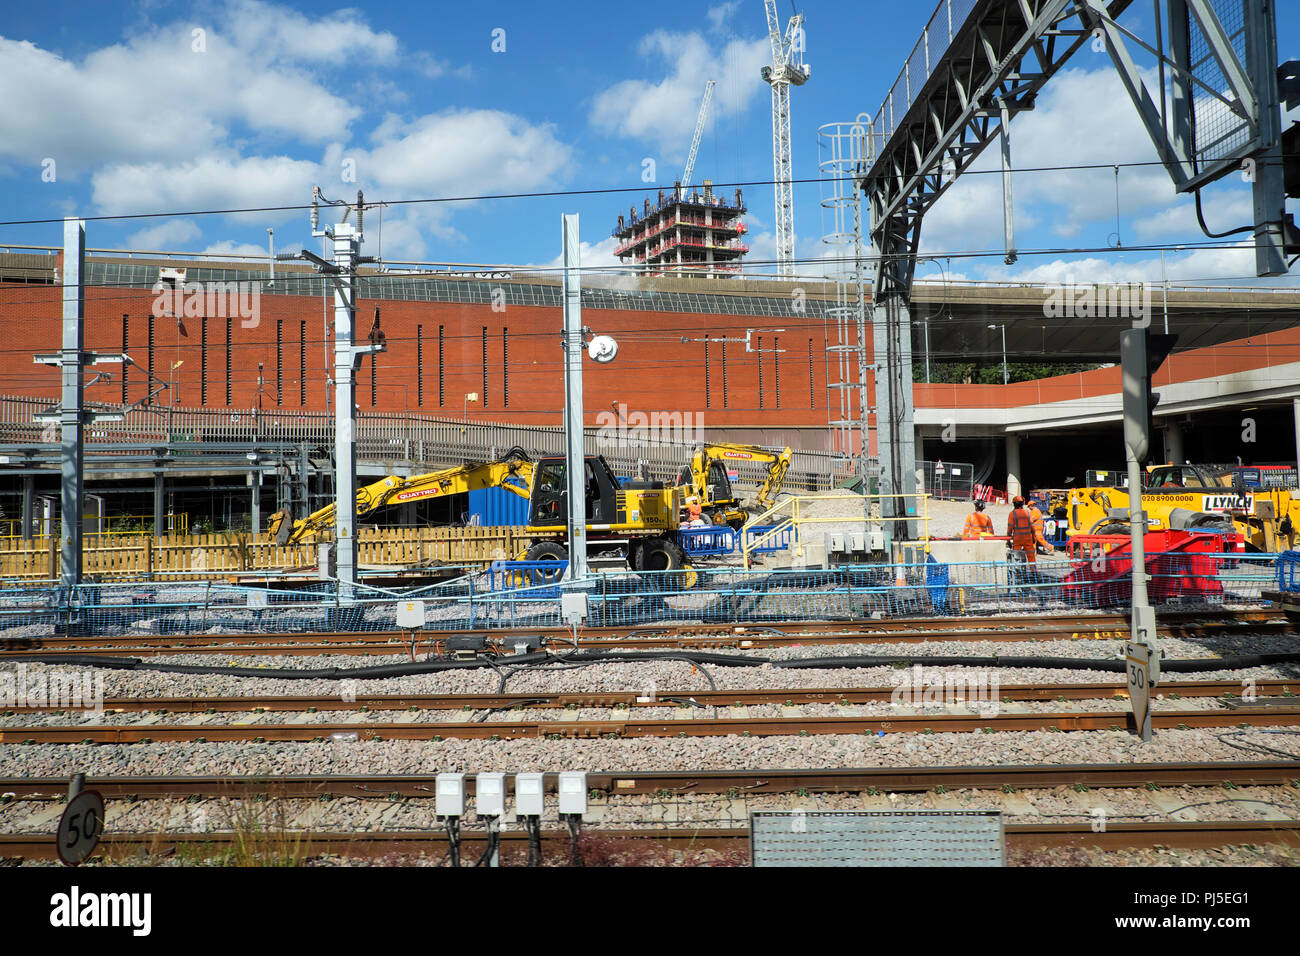 Construction site and rail tracks on the approach to Paddington Railway Station in London England UK  KATHY DEWITT - Stock Image